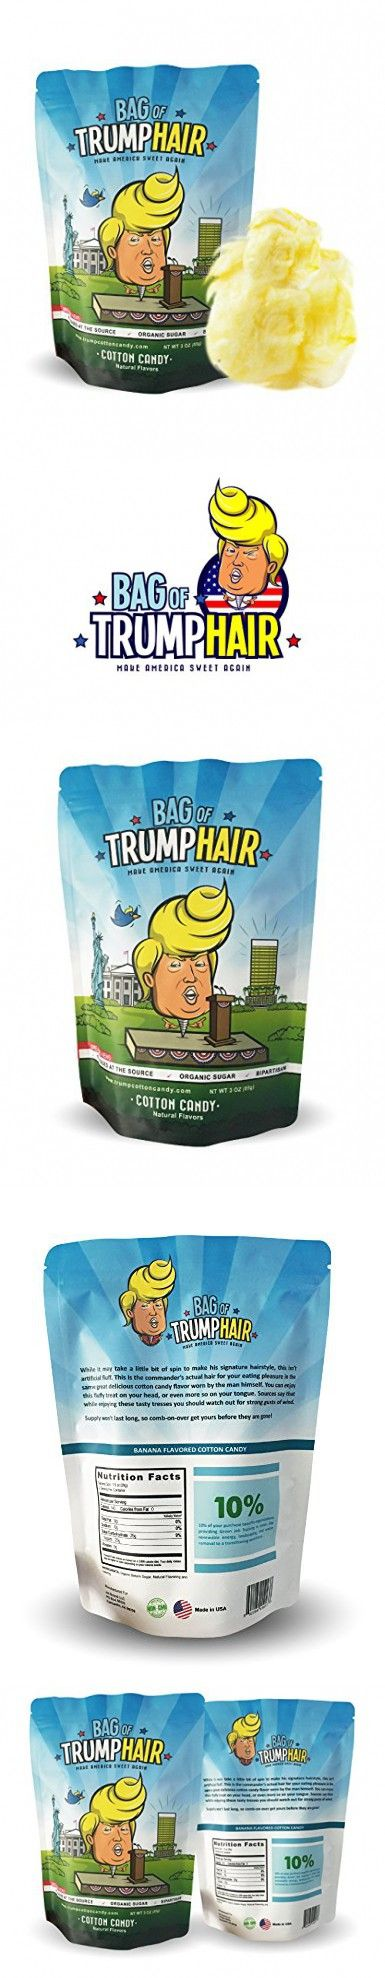 Bag of Trump Hair- The Official Cotton Candy of America (3oz Organic Sugar, Natural Flavoring Cotton Candy) - Unique Gluten Free Gag Gift for Friends, Moms, Dads, Grads, Birthday Boys or Girls